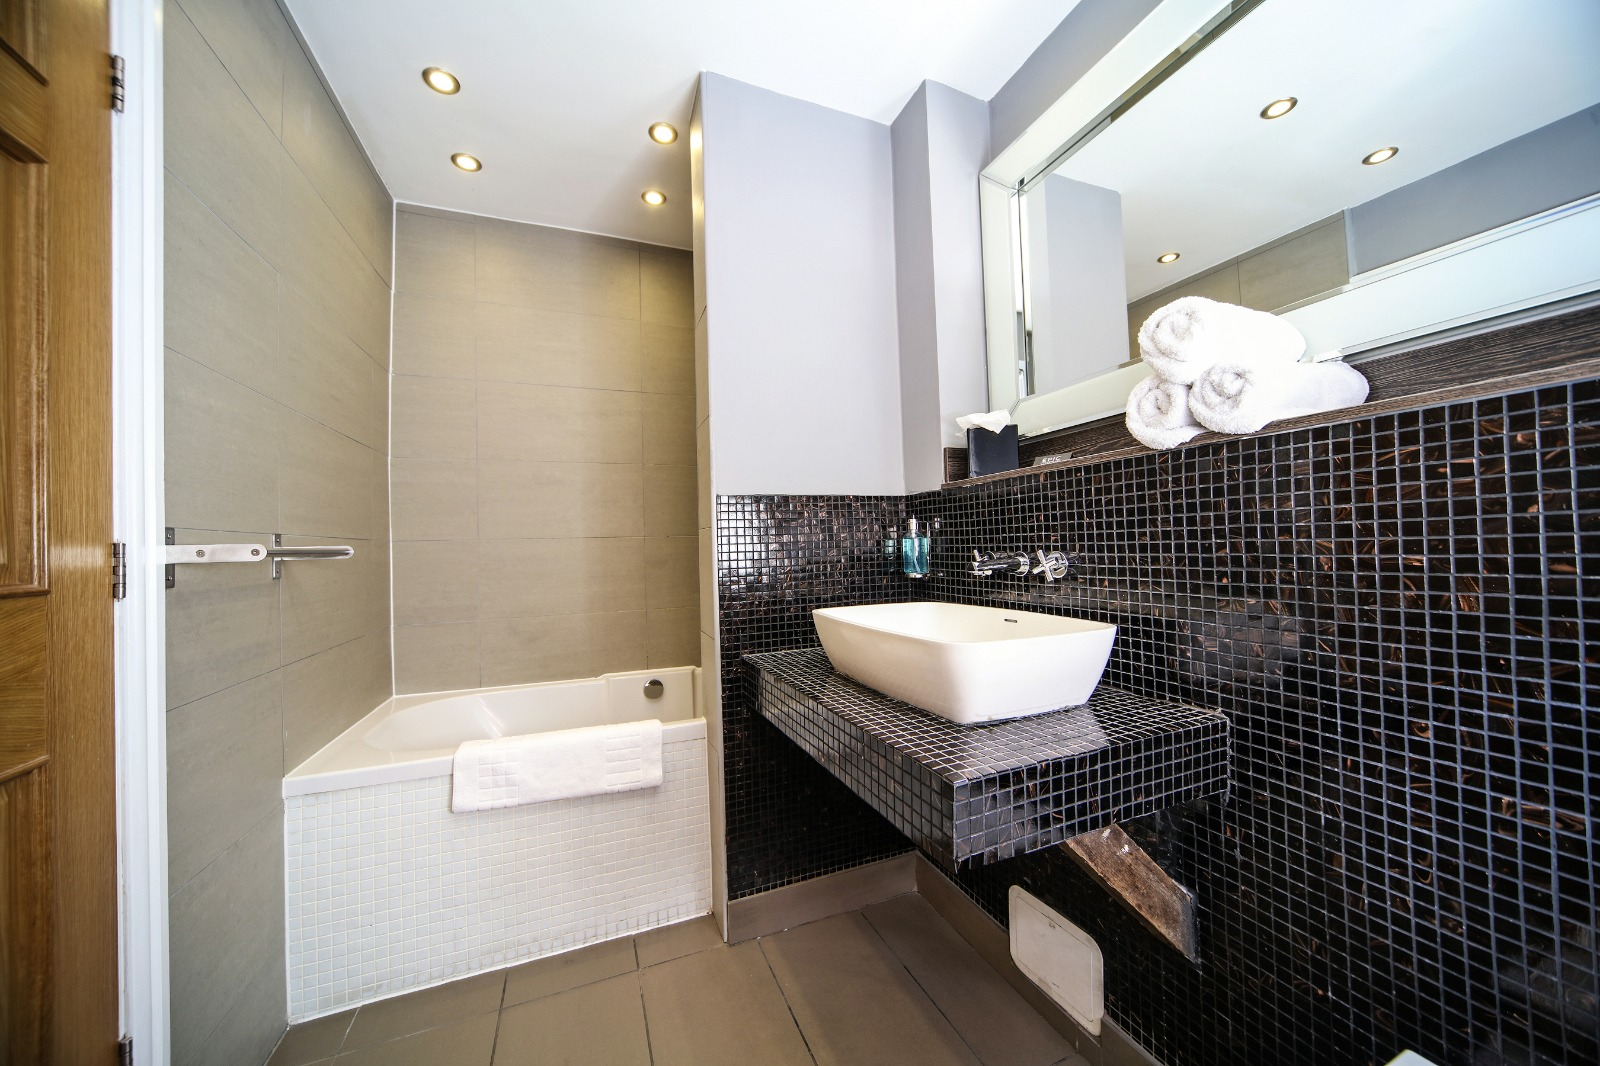 Bathroom at Campbell Street Apartments - Citybase Apartments